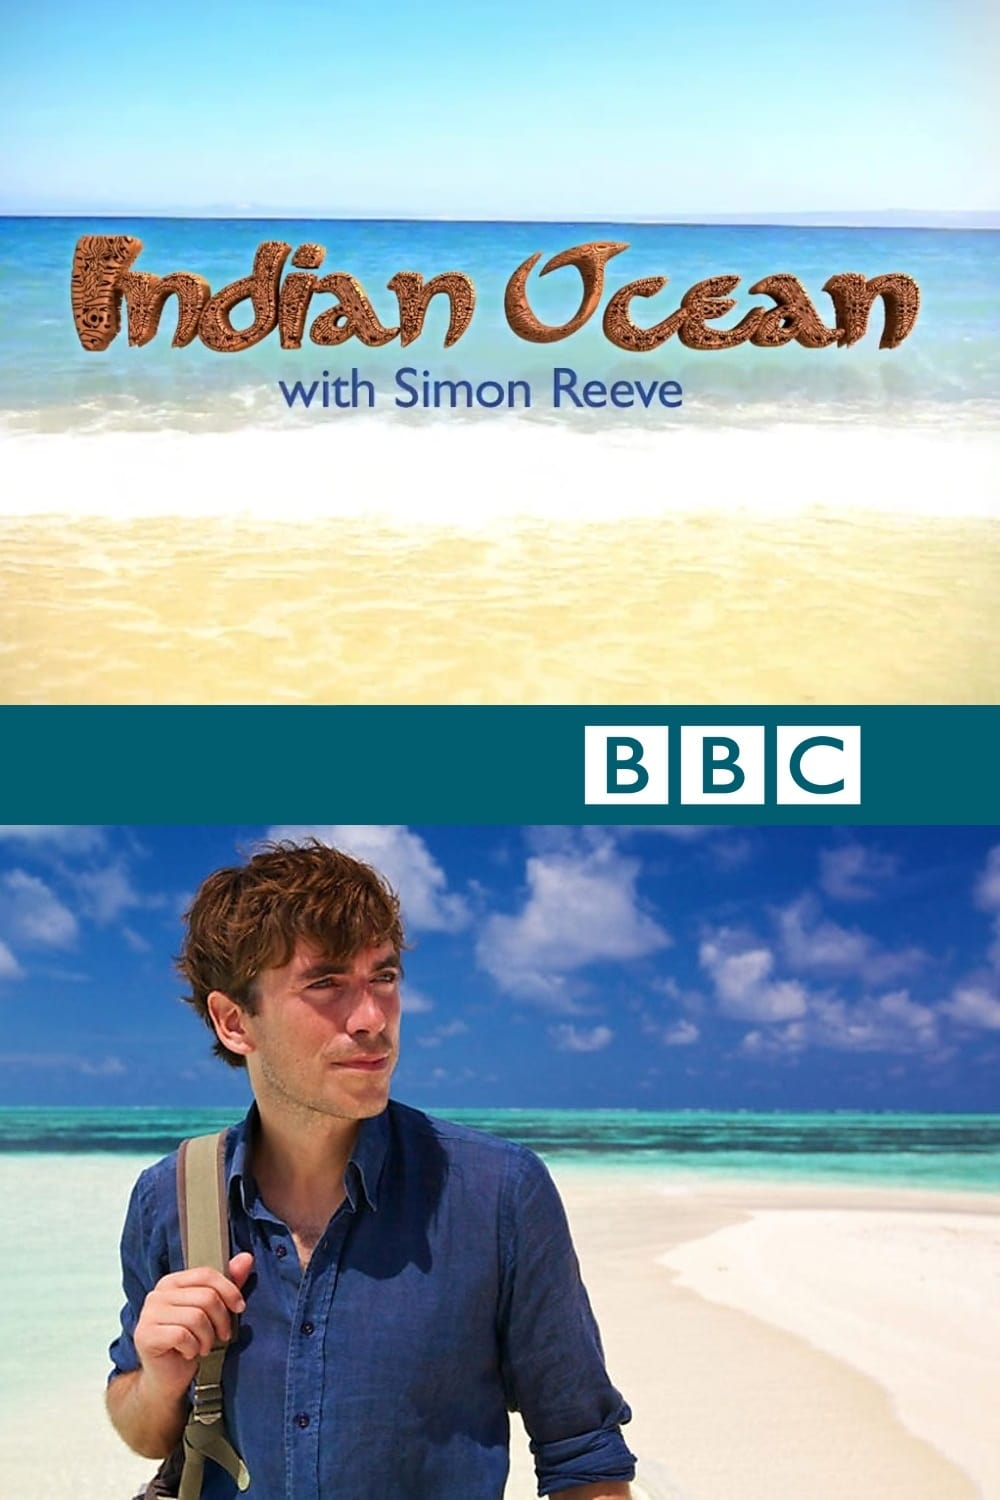 Indian Ocean with Simon Reeve (2012)